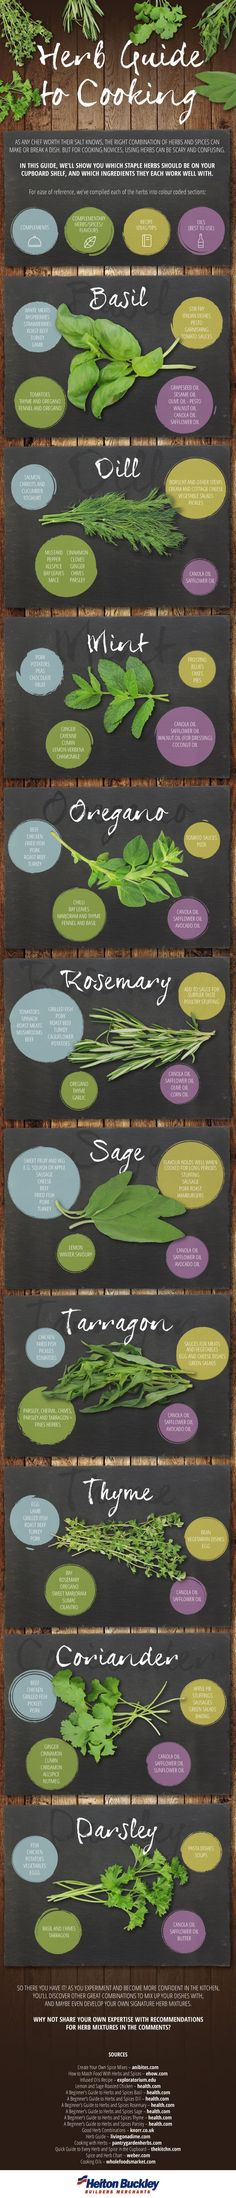 A Guide To Using Herbs When You Cook (Infographic) - mindbodygreen.com